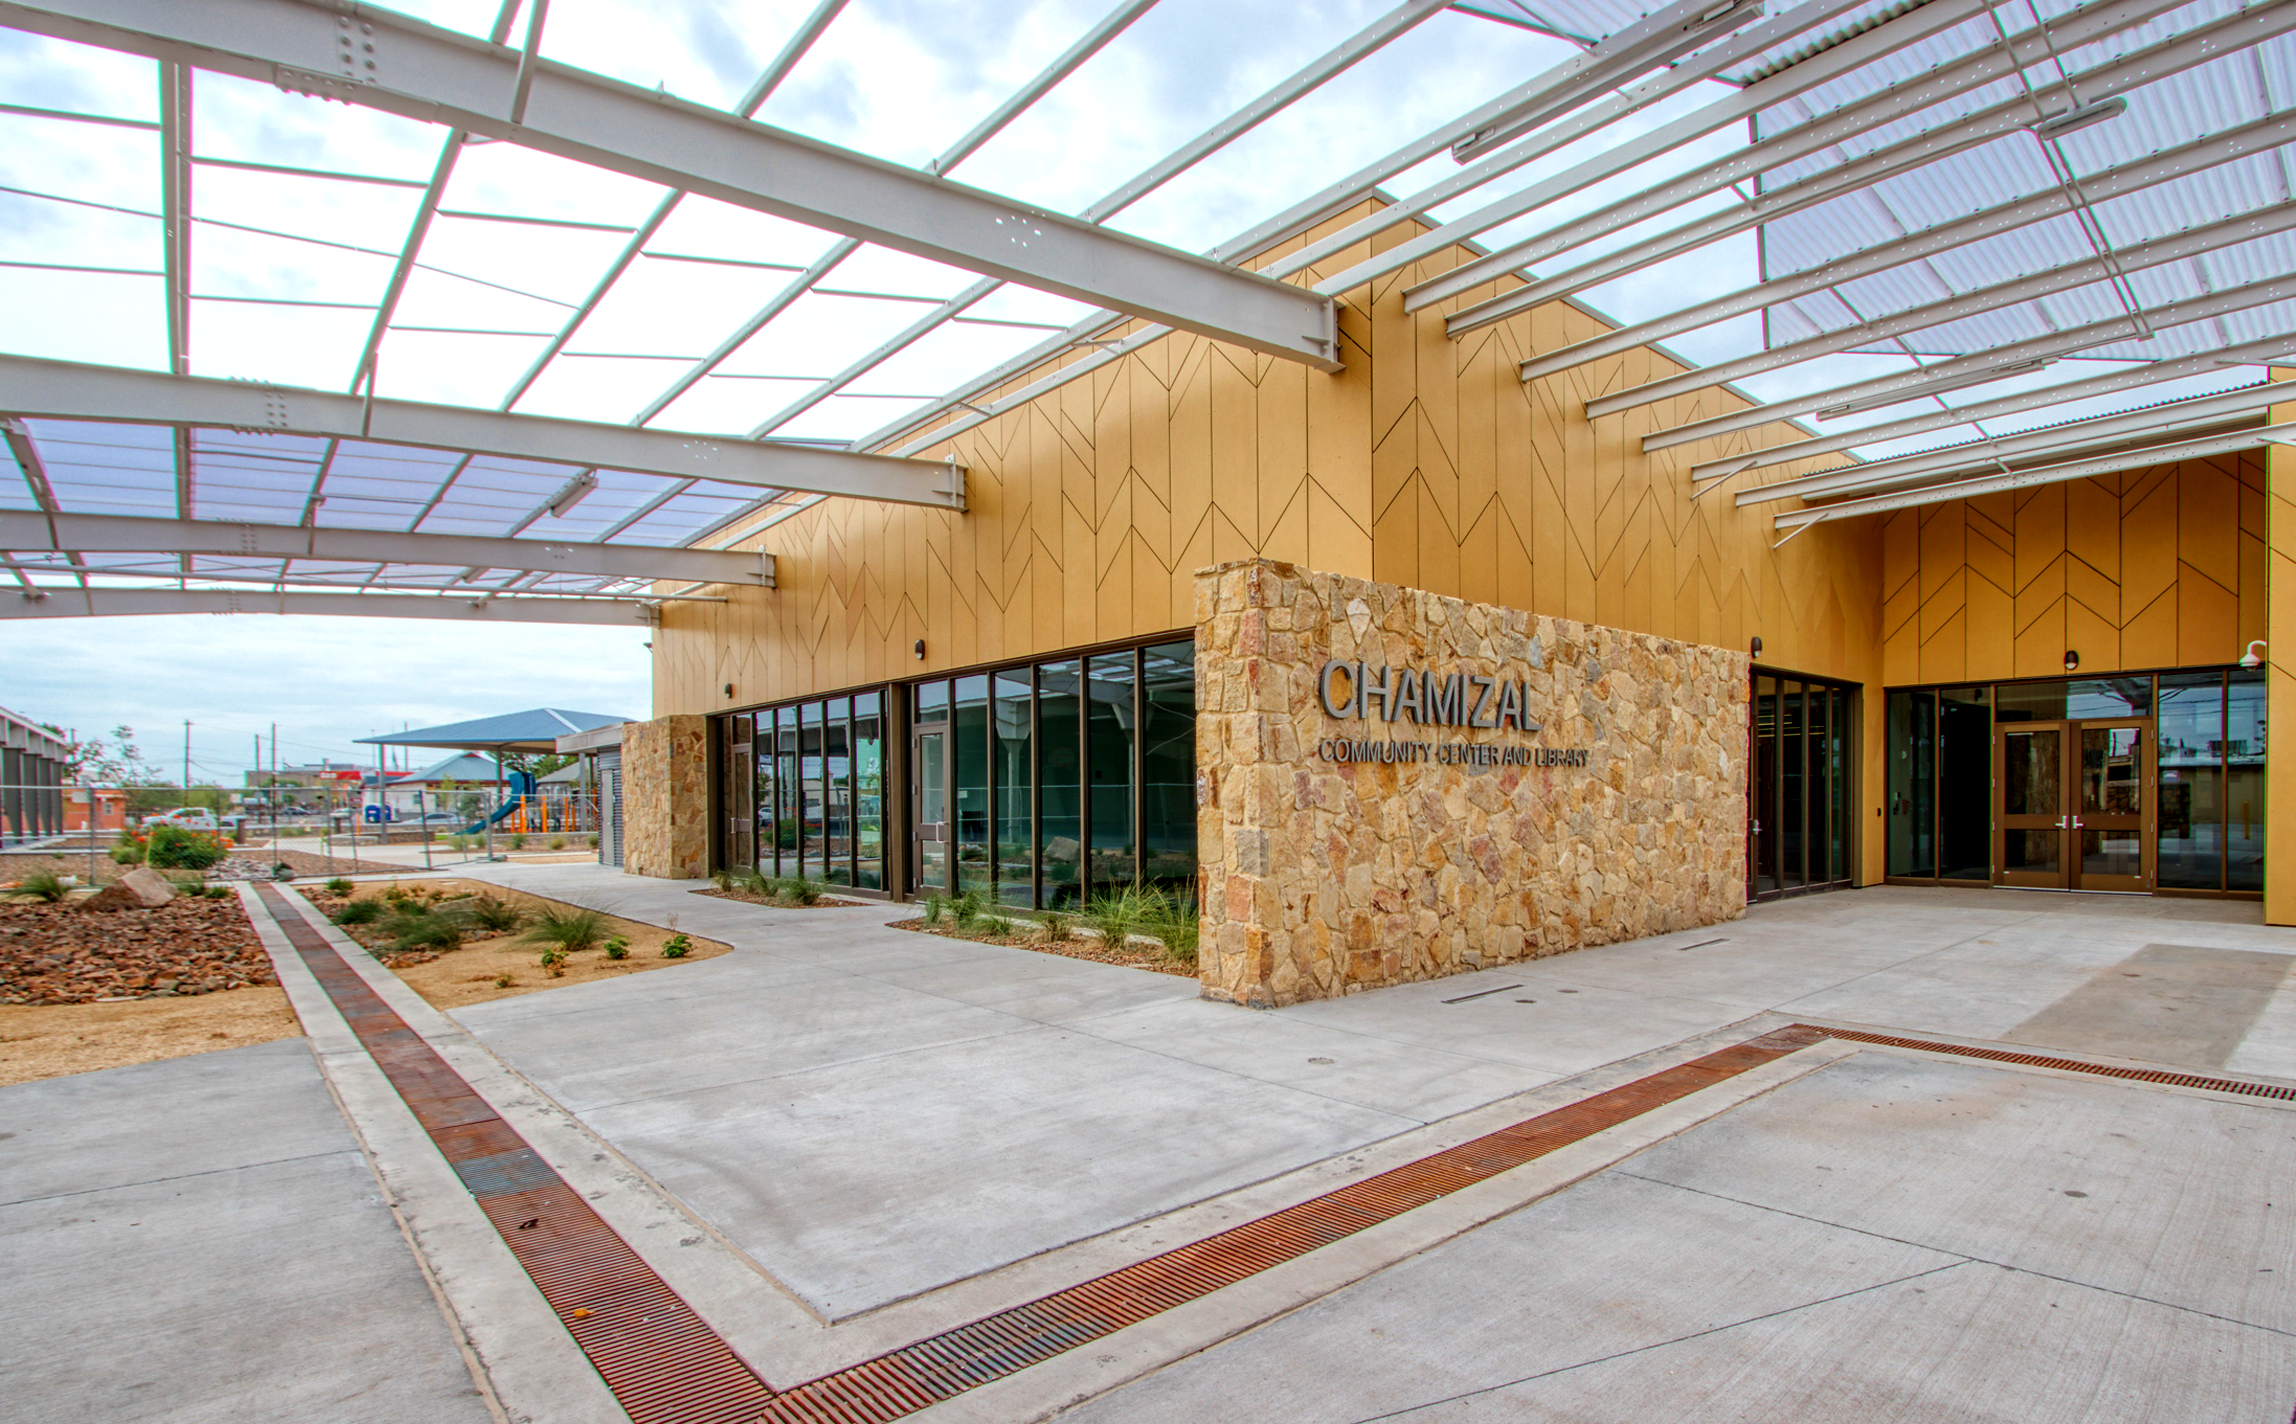 Chamizal Community Center and Library Exterior